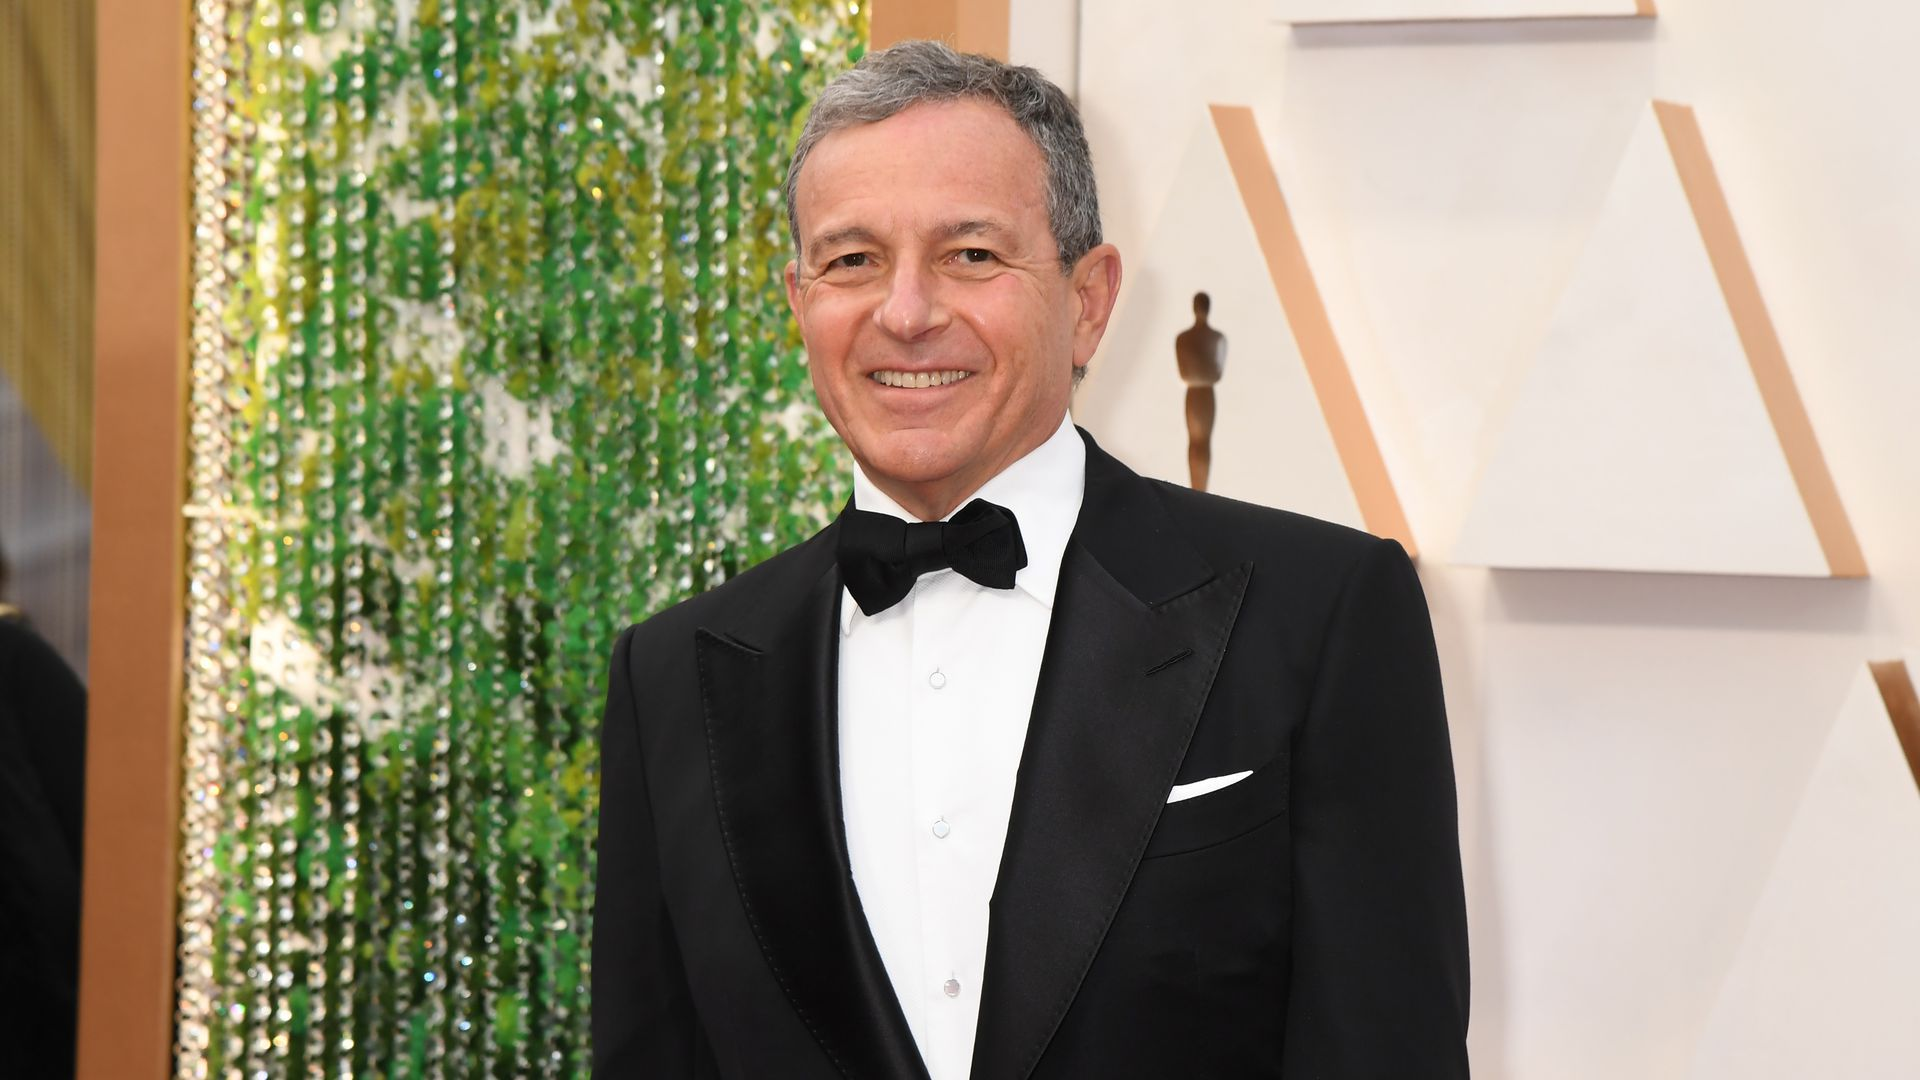 Bob Iger stuns media world with sudden departure as Disney CEO - Axios